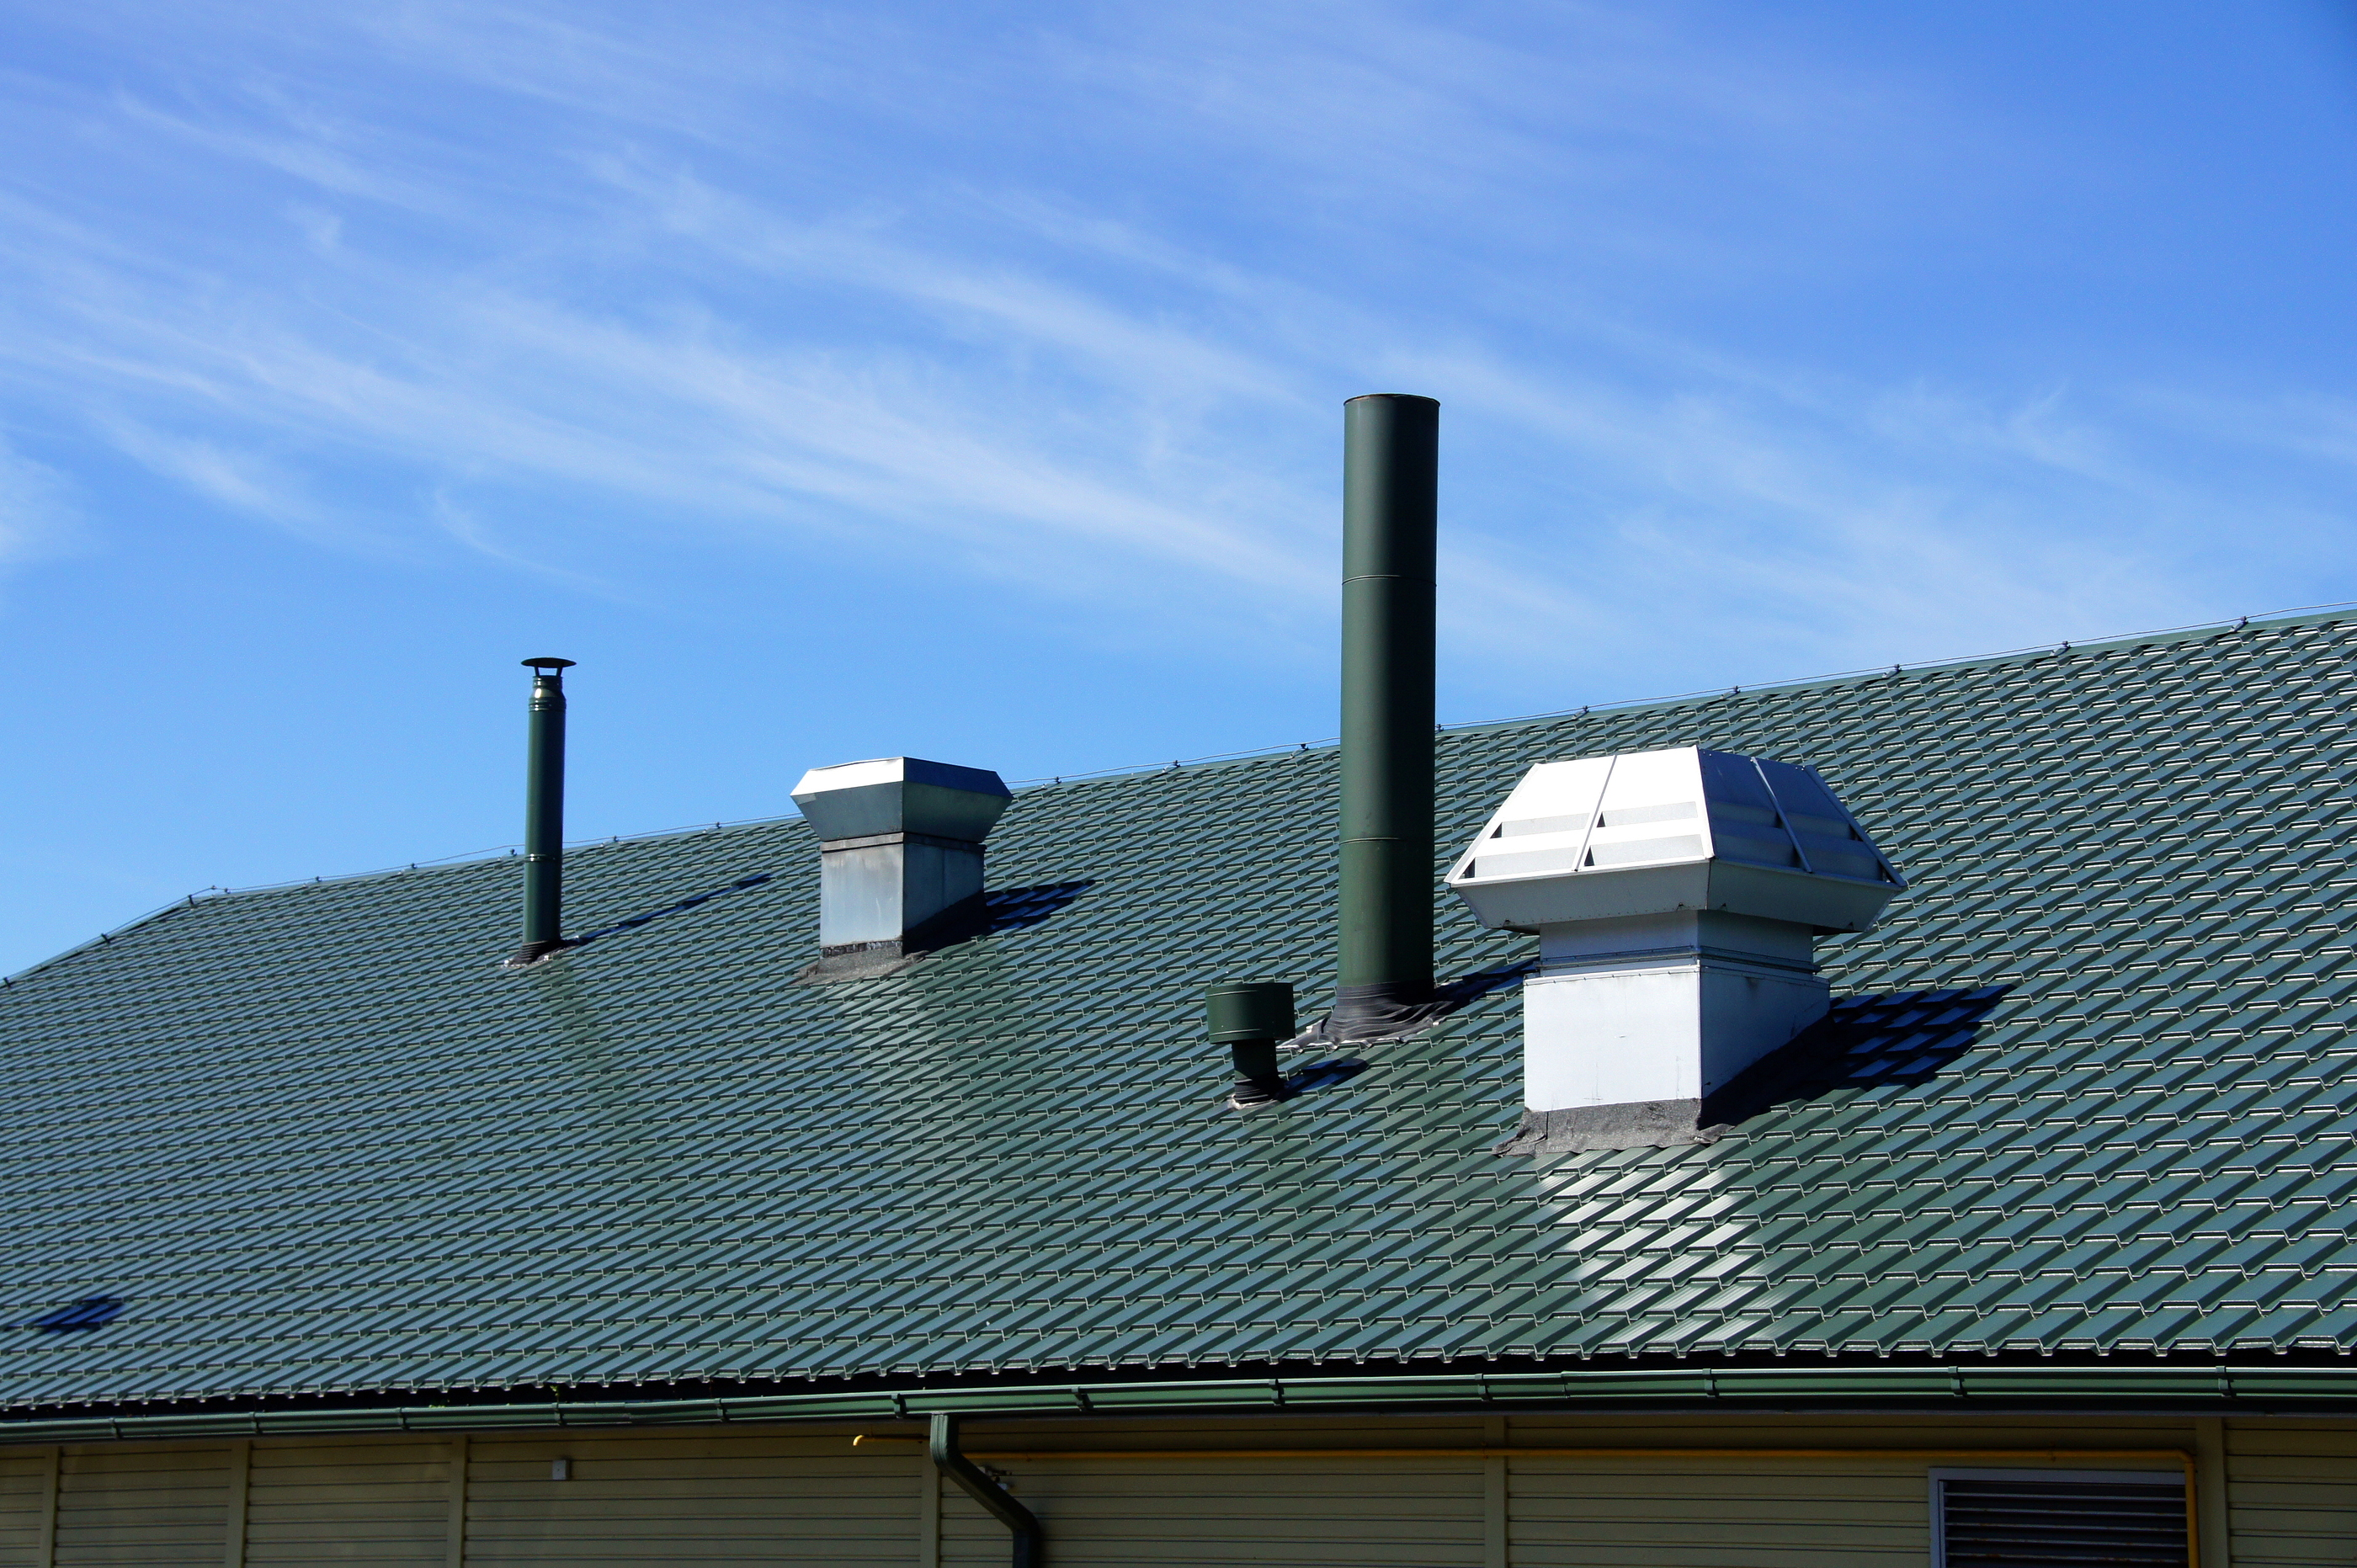 Roof Vents – cool your home in the summer